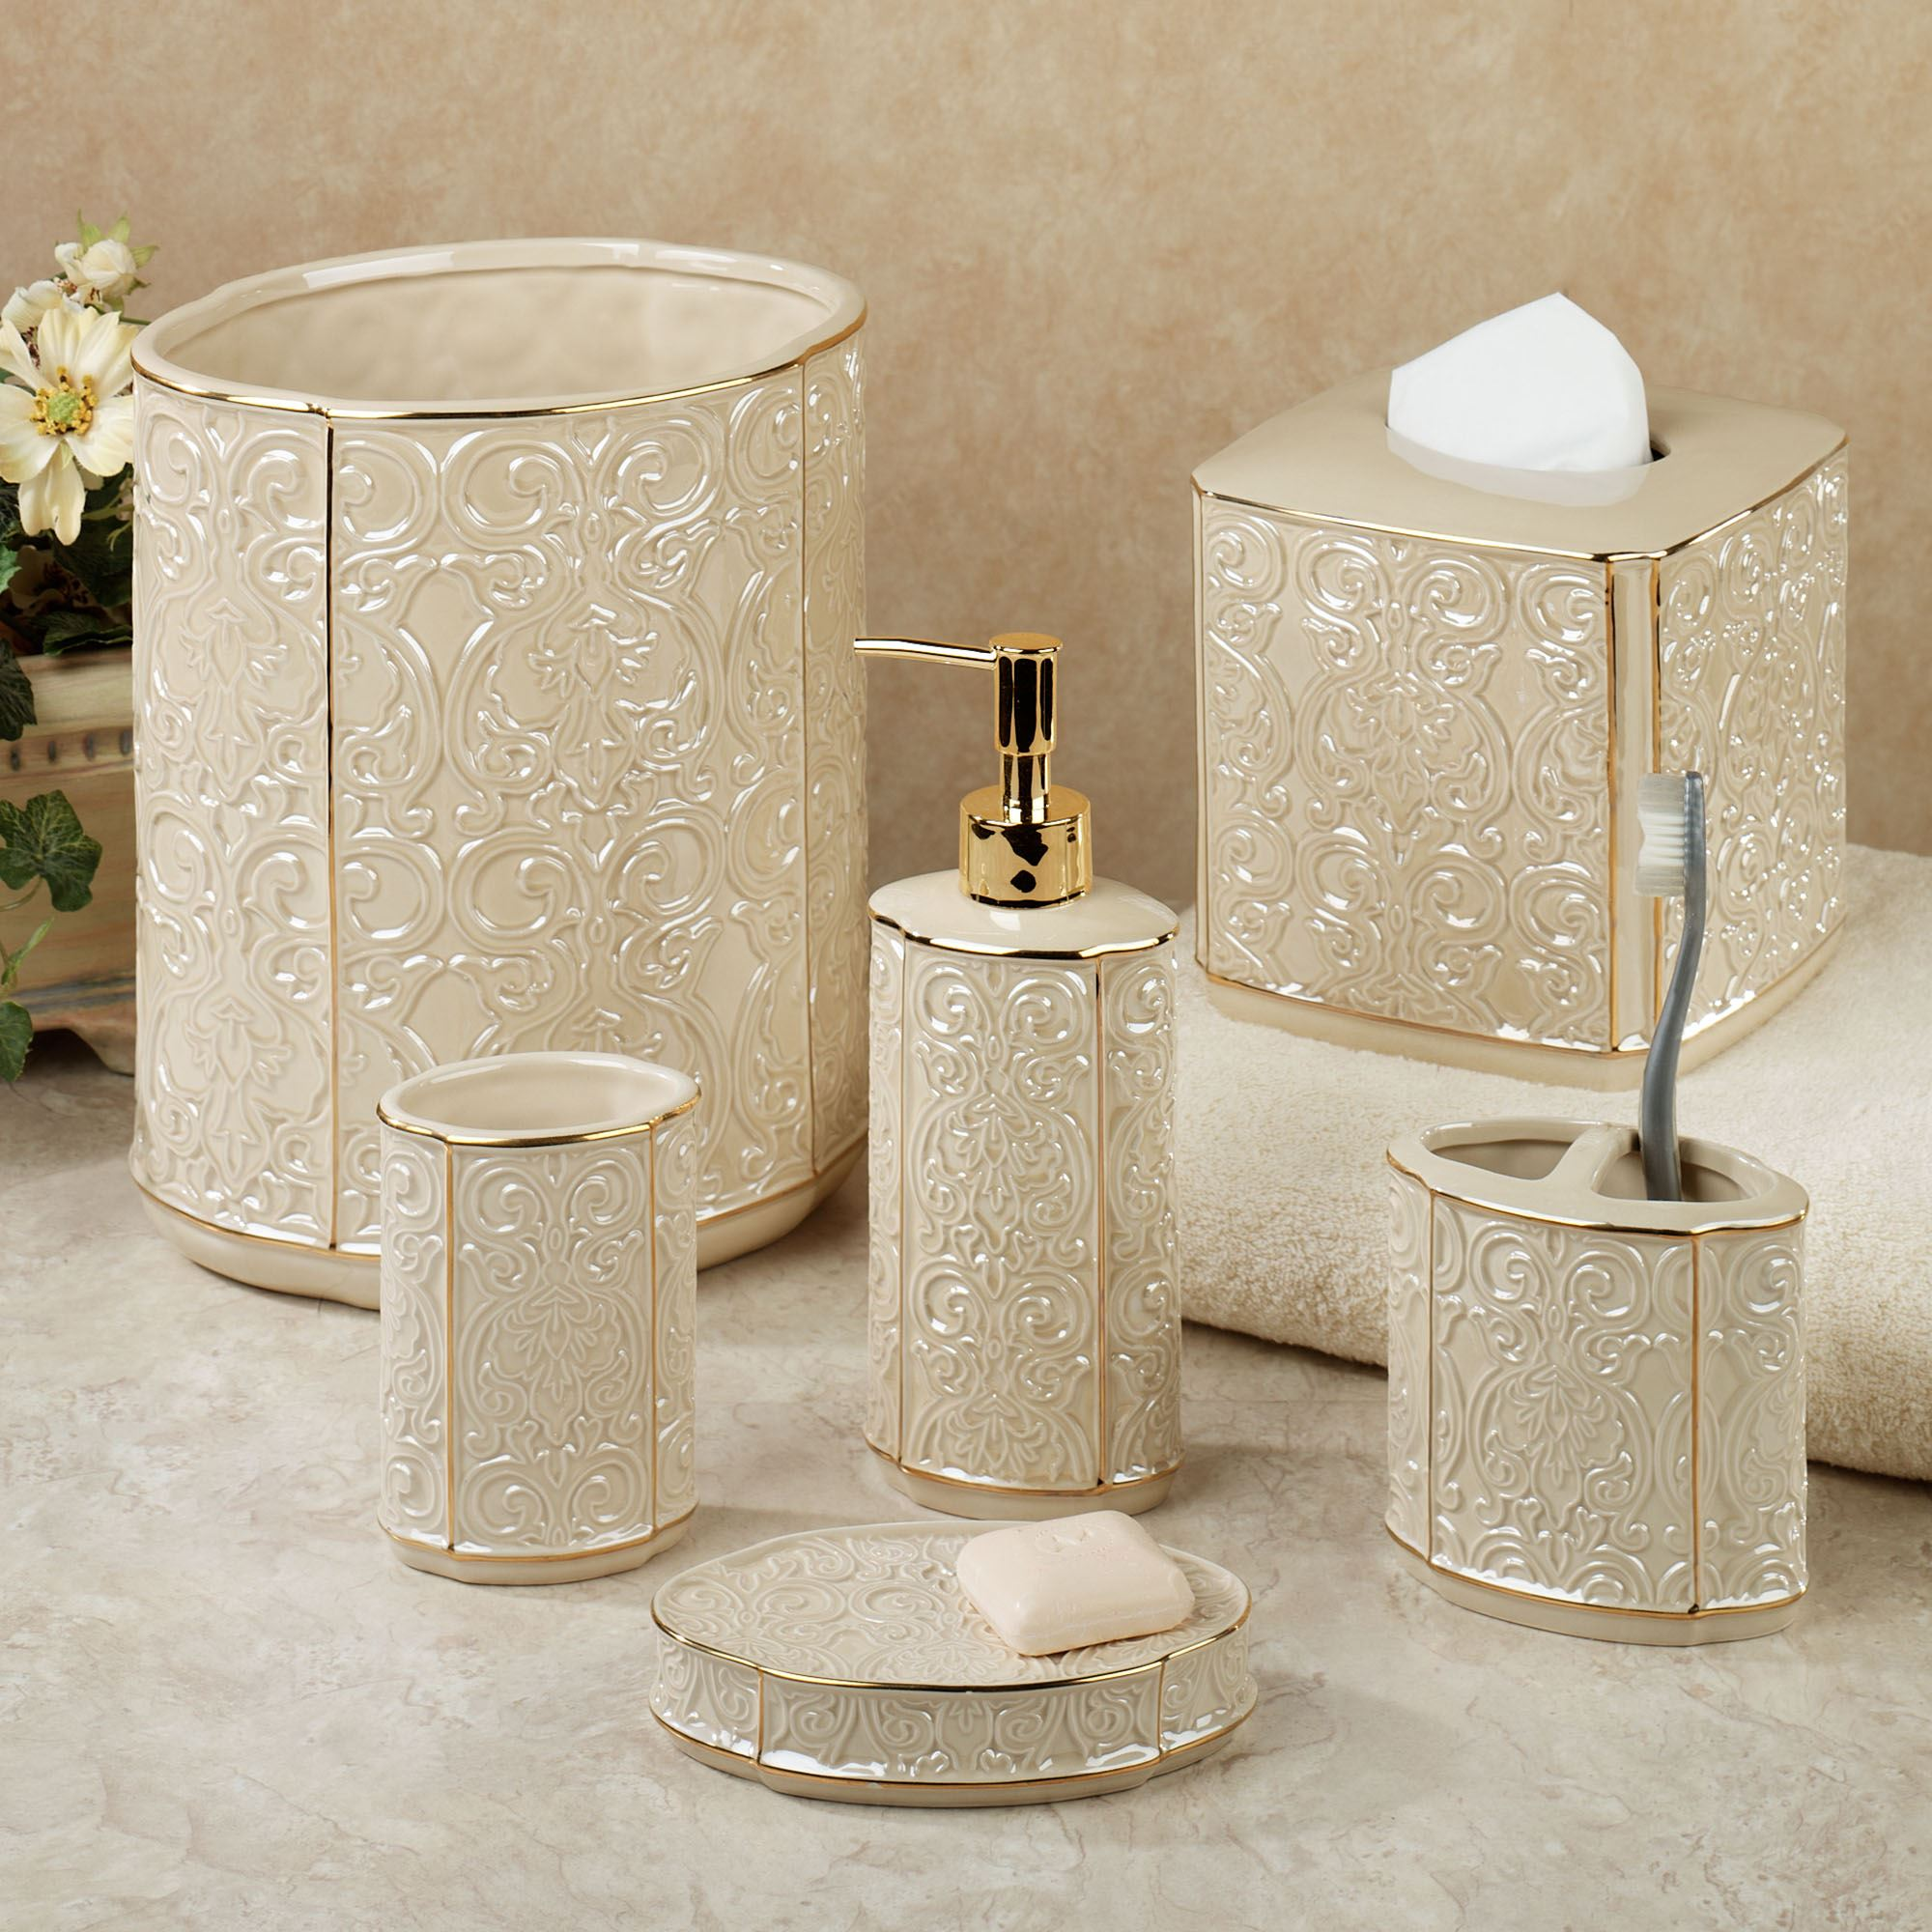 Furla cream damask ceramic bath accessories for White bath accessories